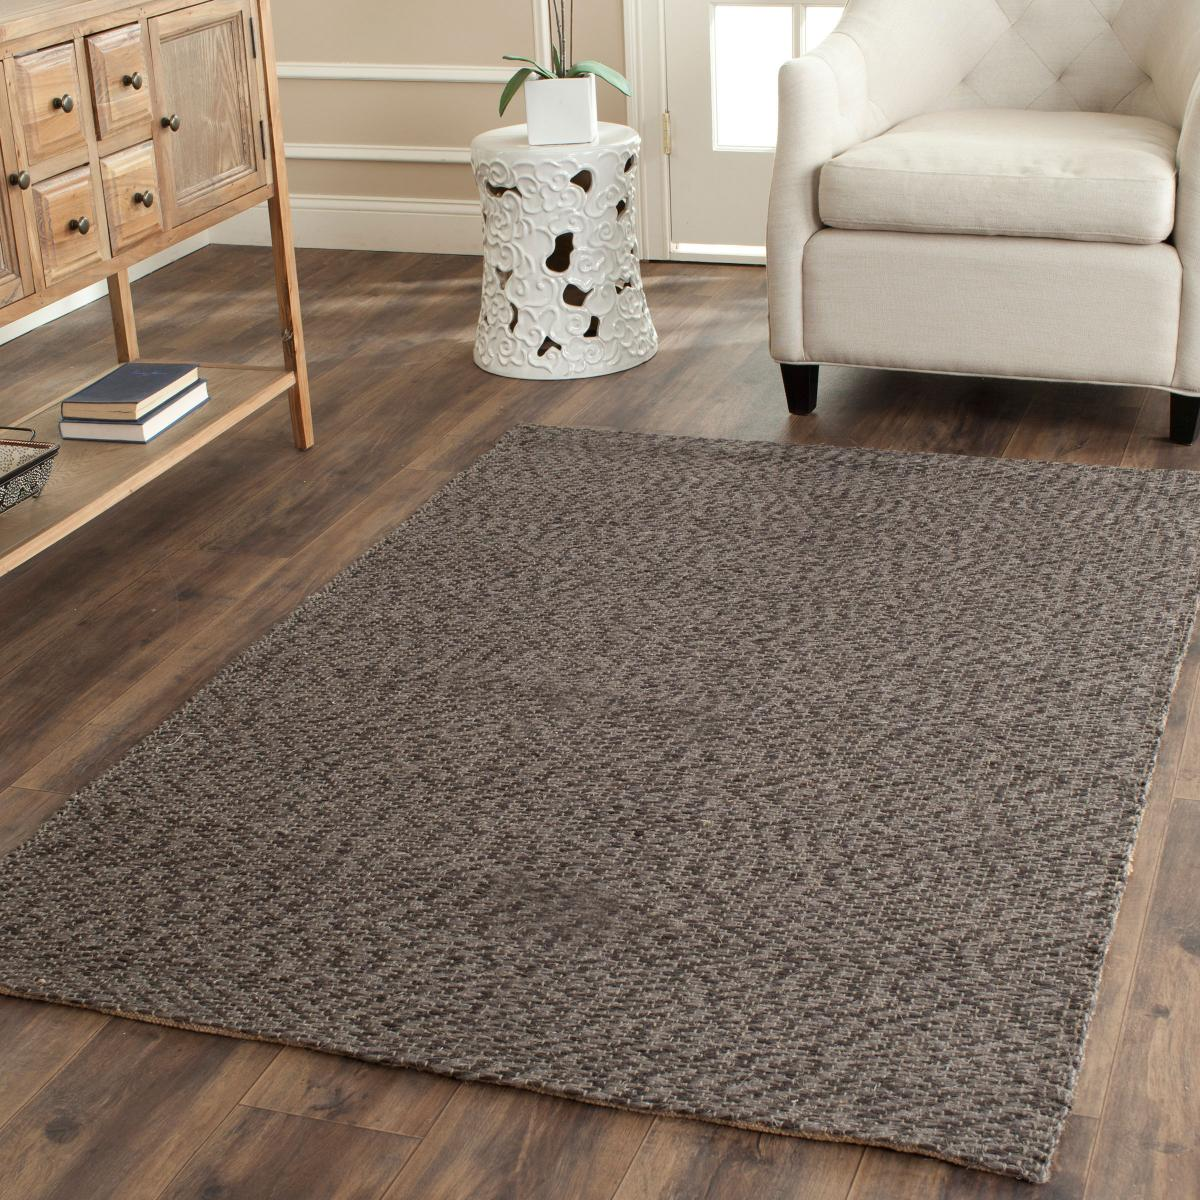 Rug Nf448a Natural Fiber Area Rugs By Safavieh